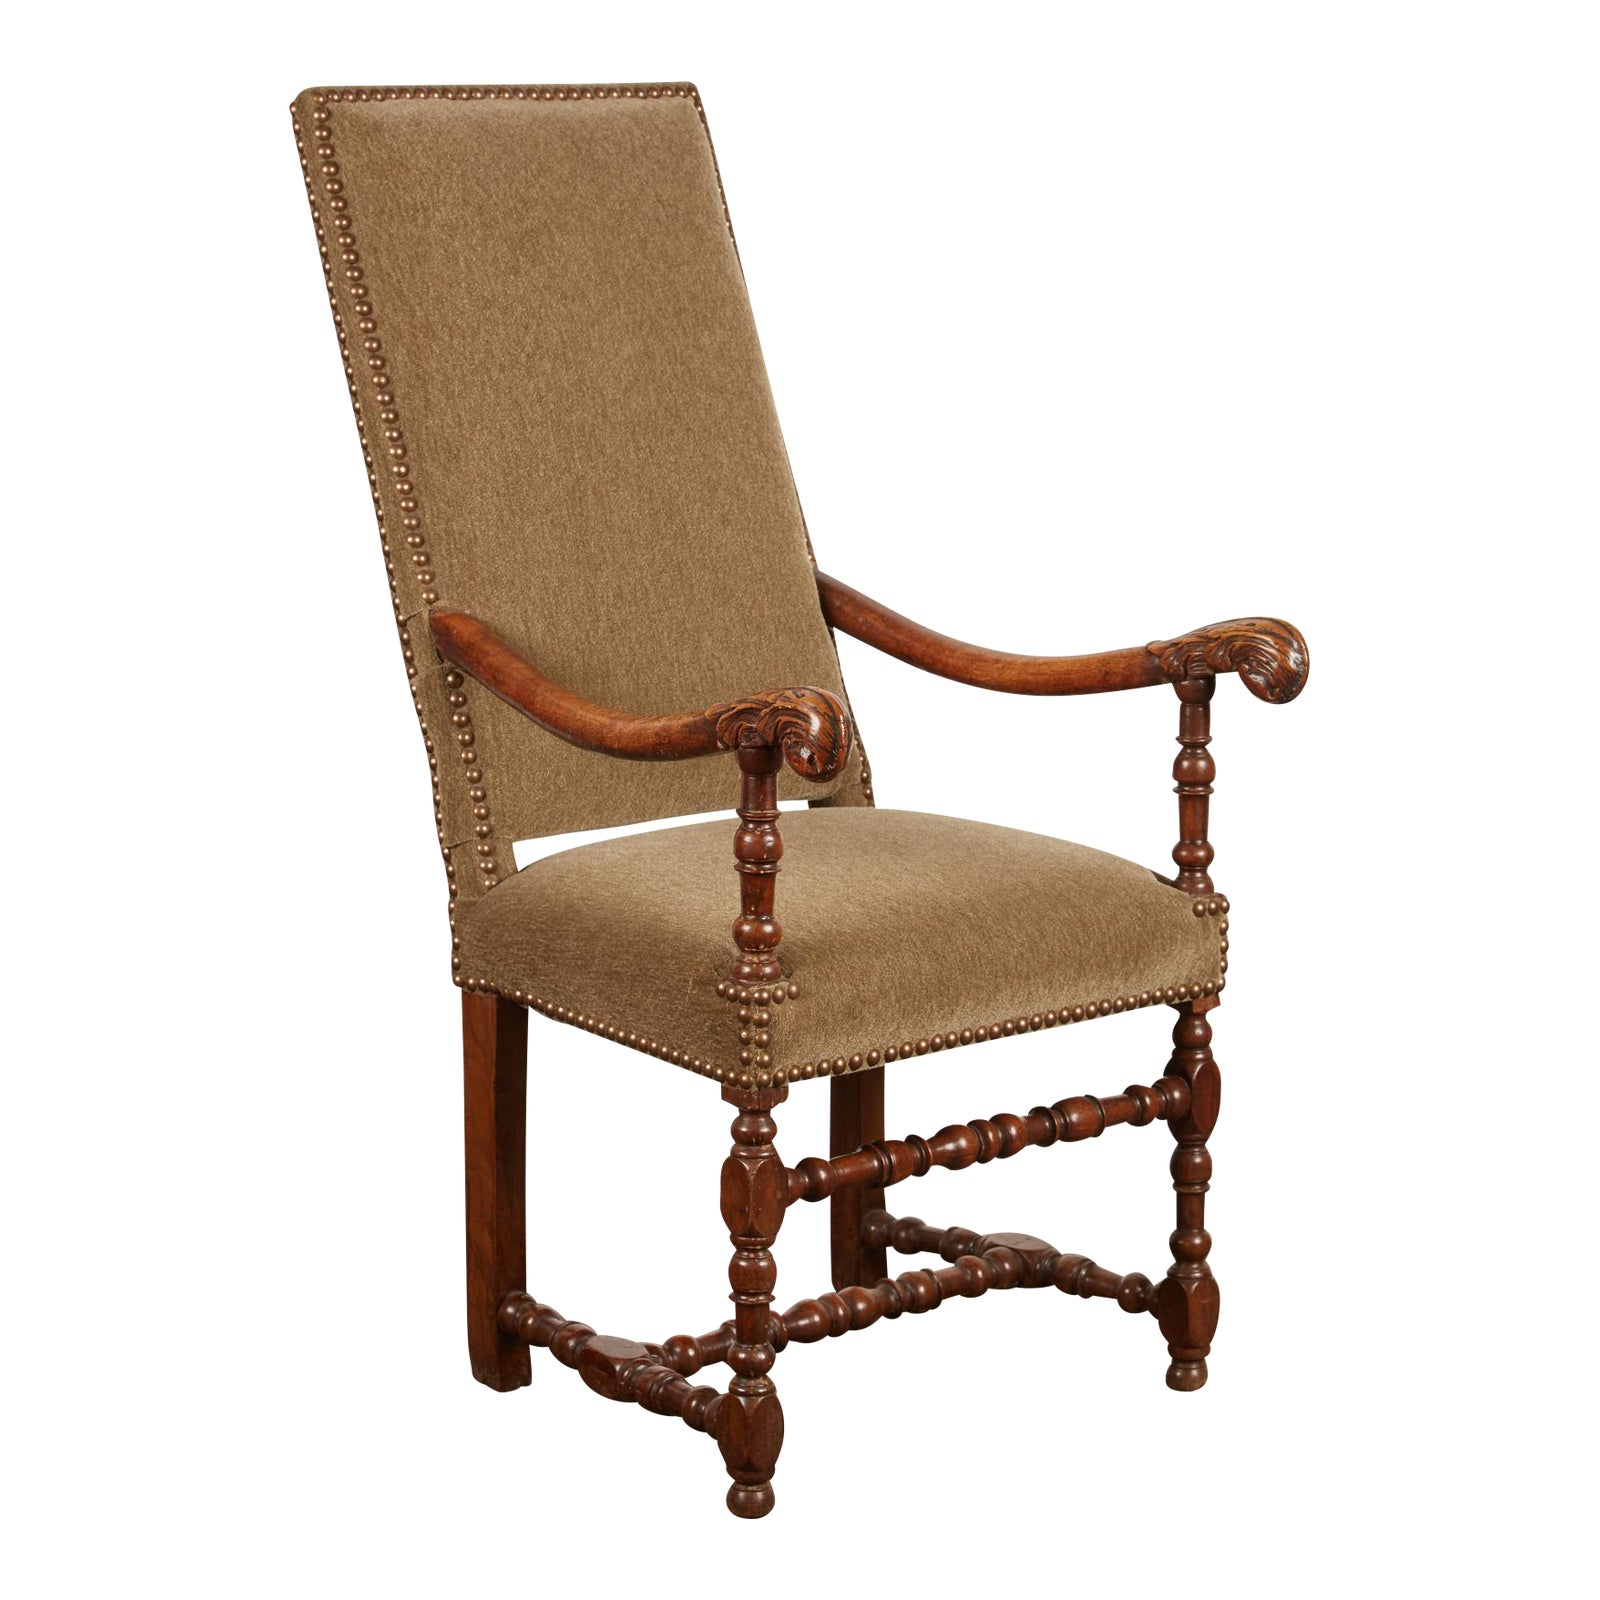 World Class 17th Century Louis Xiii French Walnut Armchair With